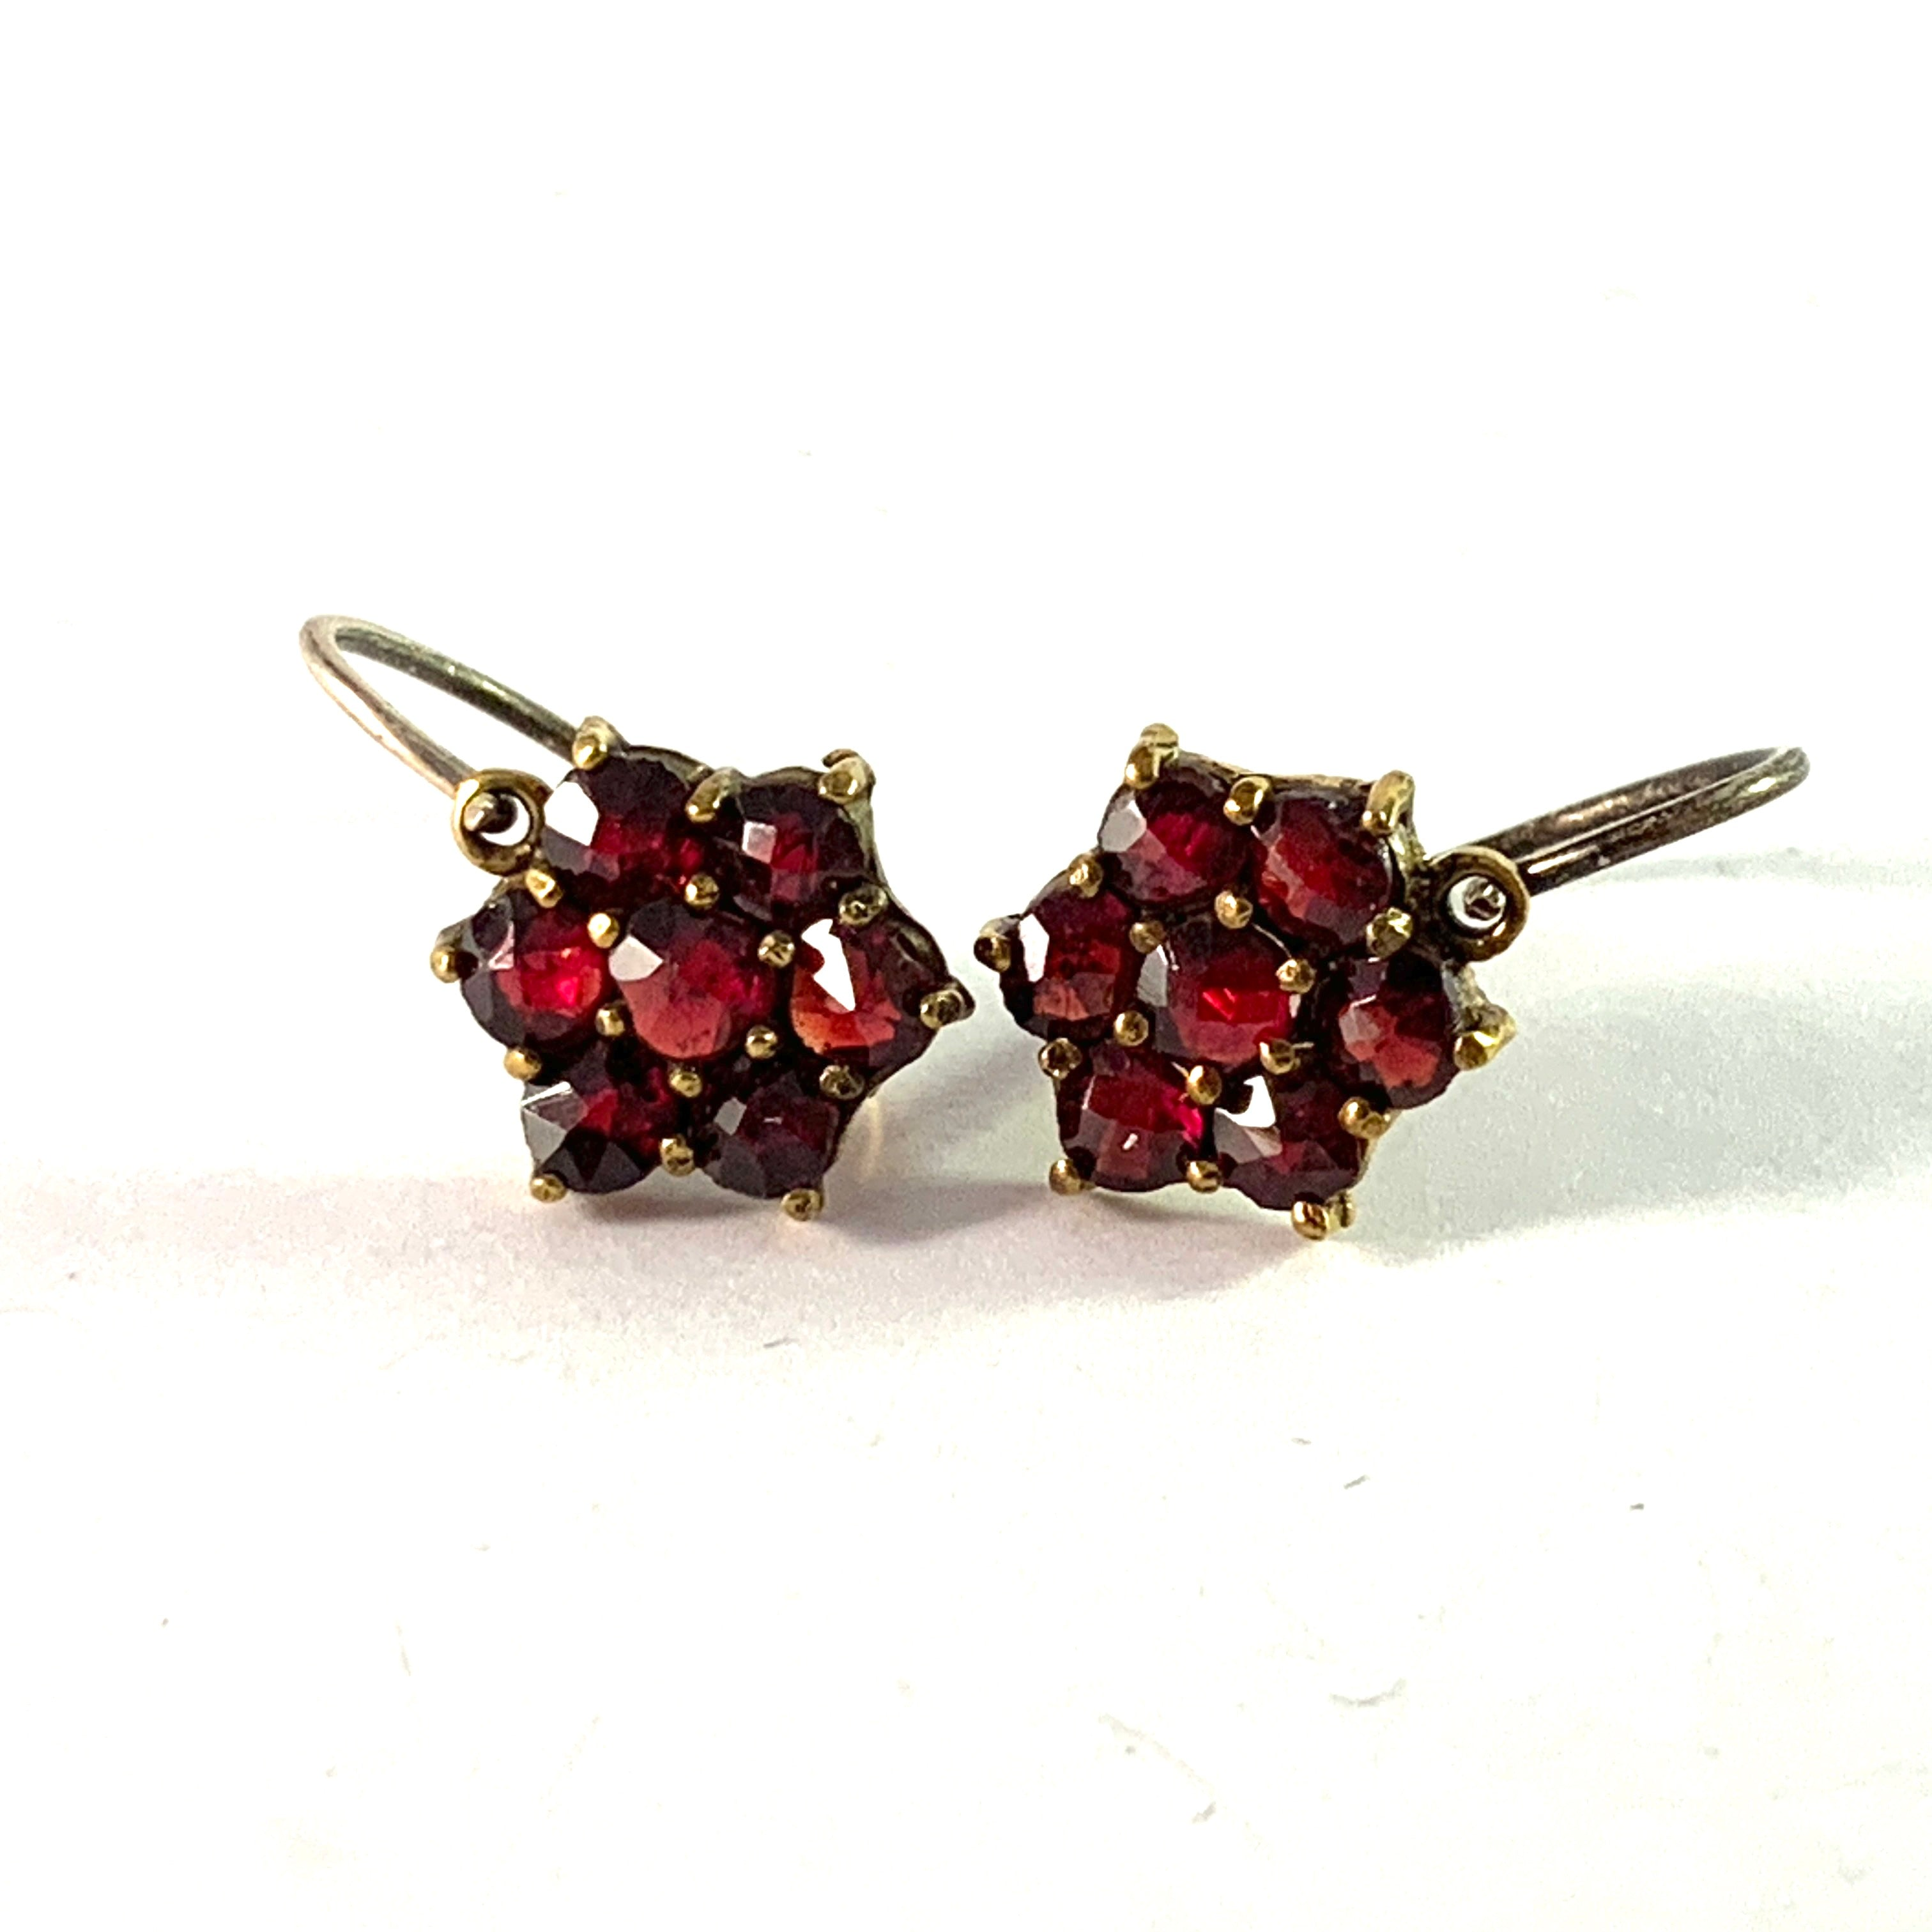 Vintage Mid Century Bohemian Garnet Partly Gilt Solid Silver Earrings.